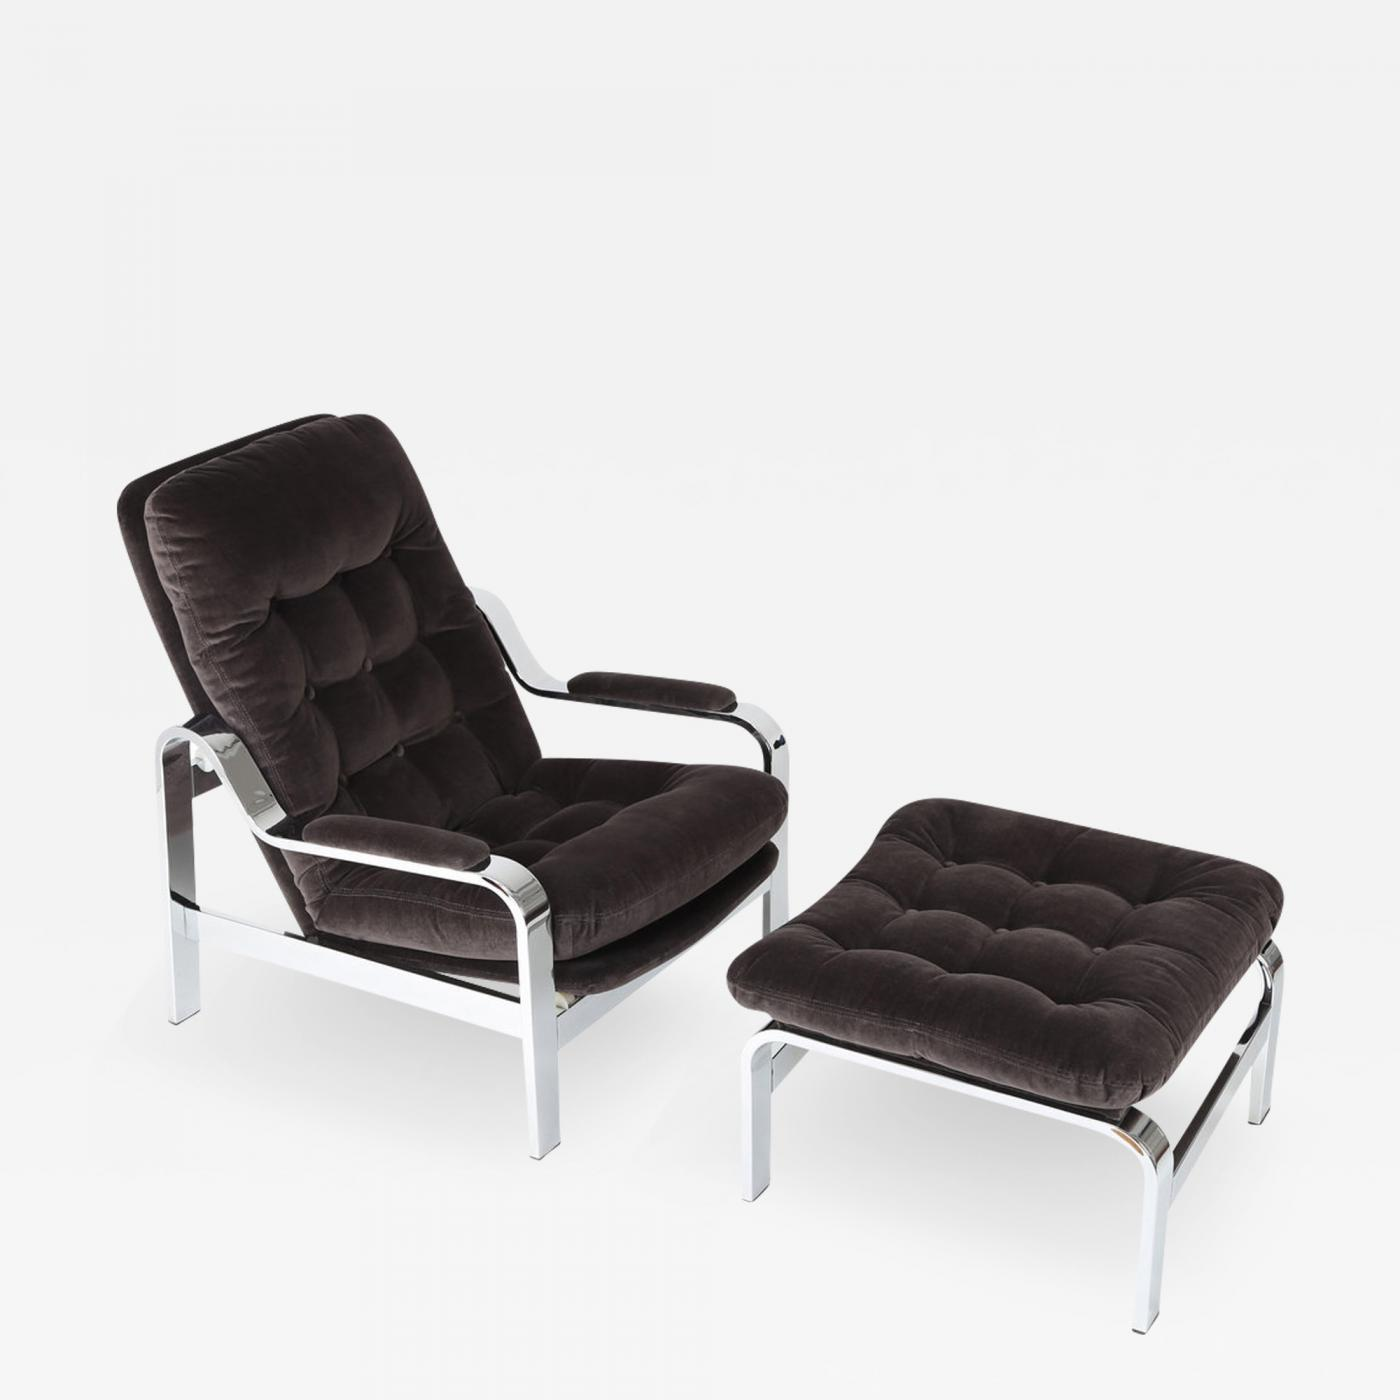 Awe Inspiring Selig Furniture Co Selig Reclining Lounge Chair And Ottoman With Chrome Frames Short Links Chair Design For Home Short Linksinfo